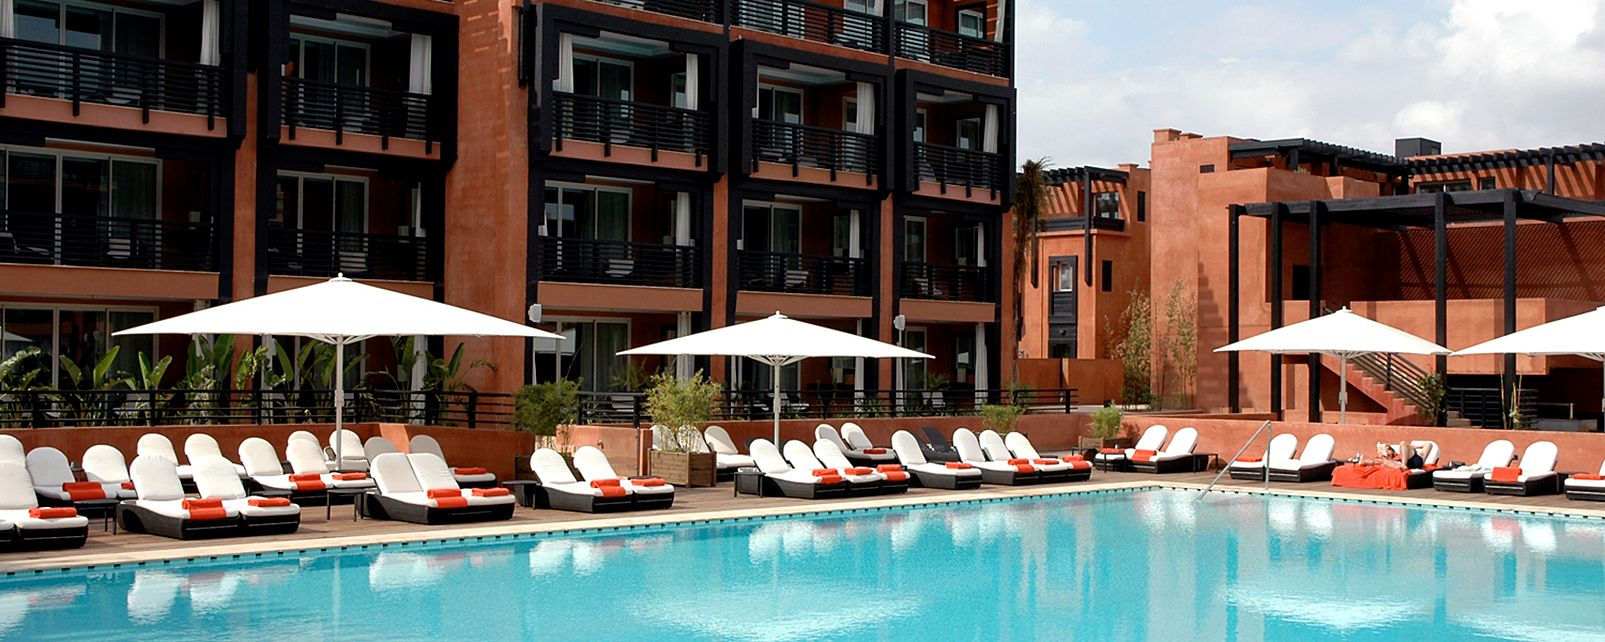 Hotel le naoura barriere in marrakech morocco for Hotels barriere